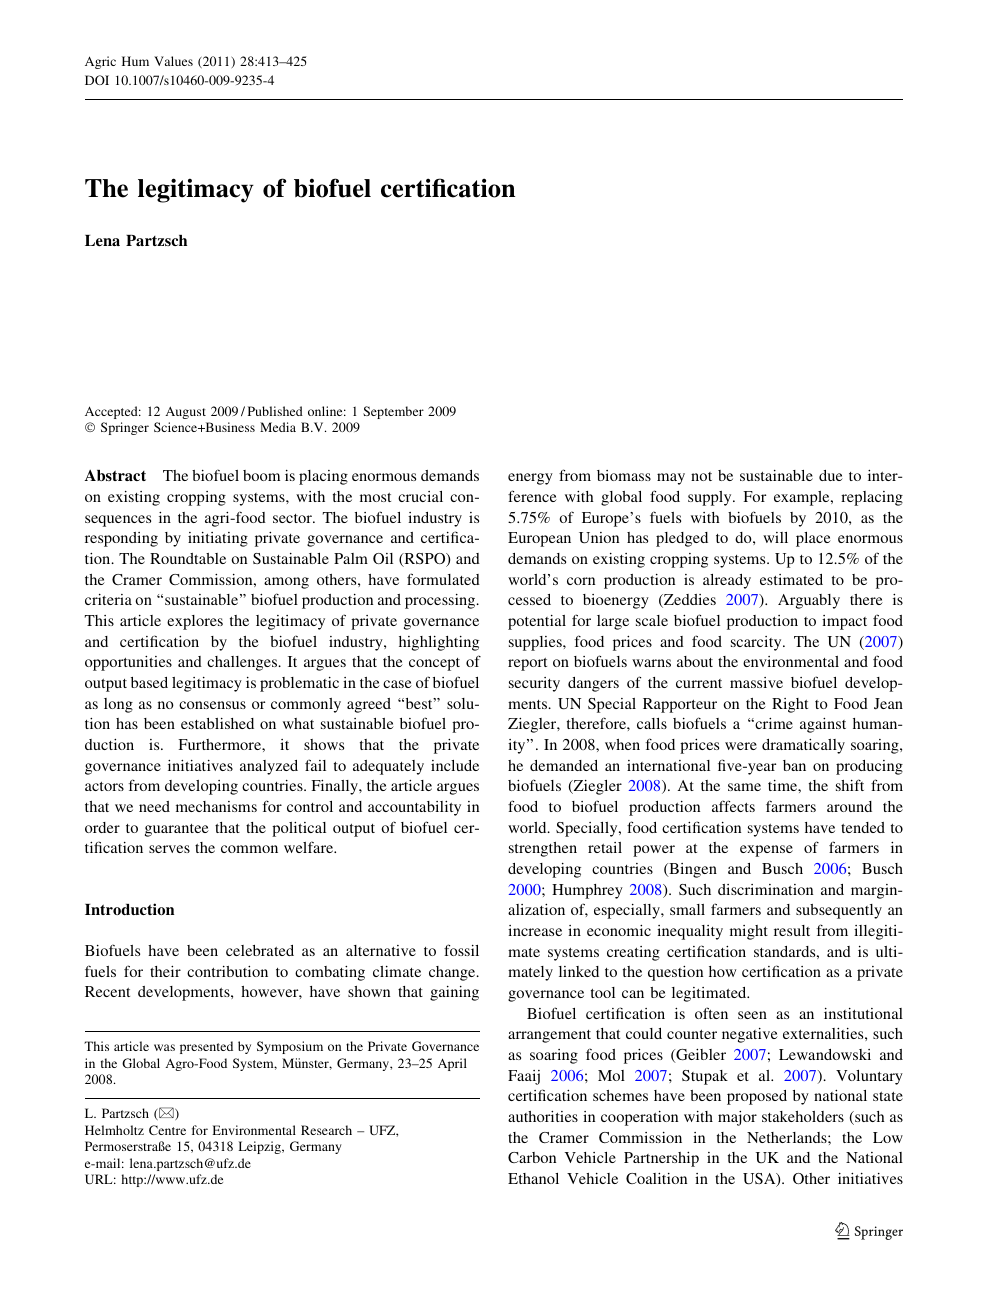 The legitimacy of biofuel certification – topic of research paper in